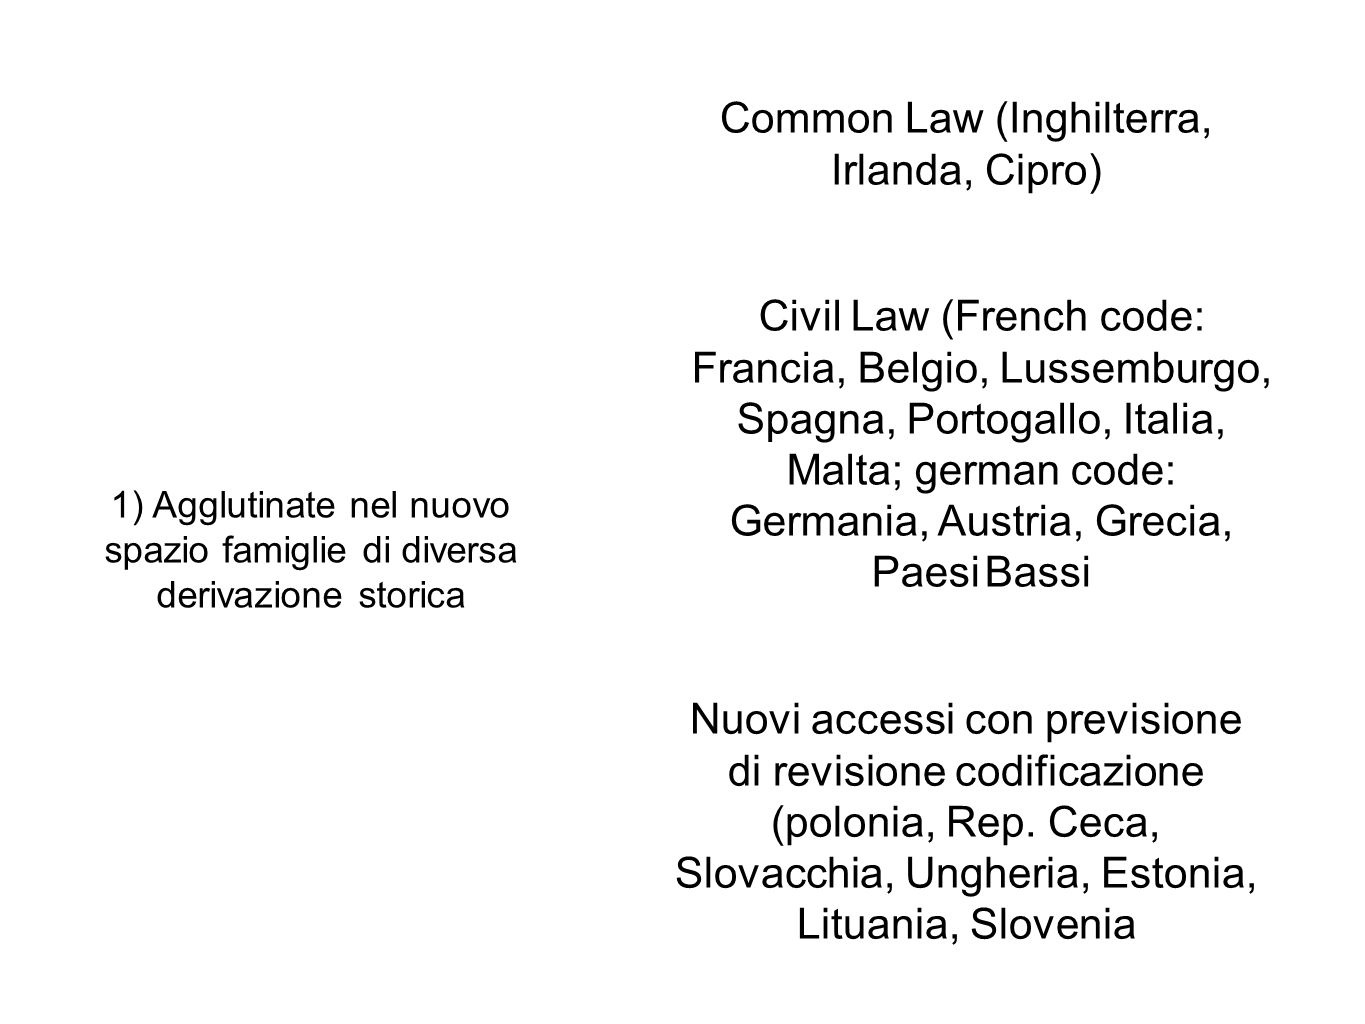 Common Law (Inghilterra, Irlanda, Cipro)